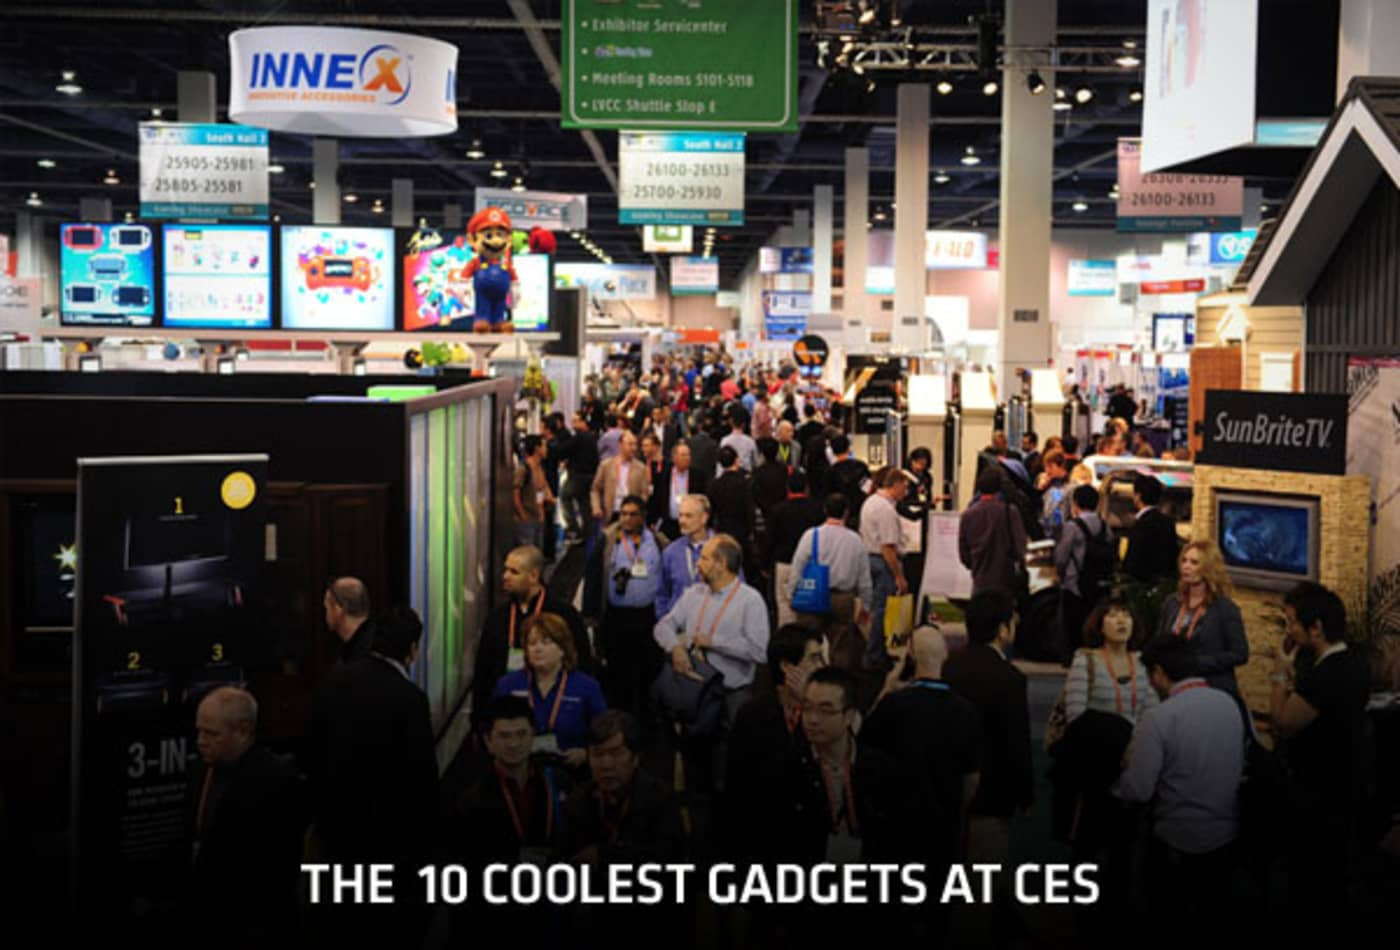 CES-most-interesting-gadgets-cover2.jpg